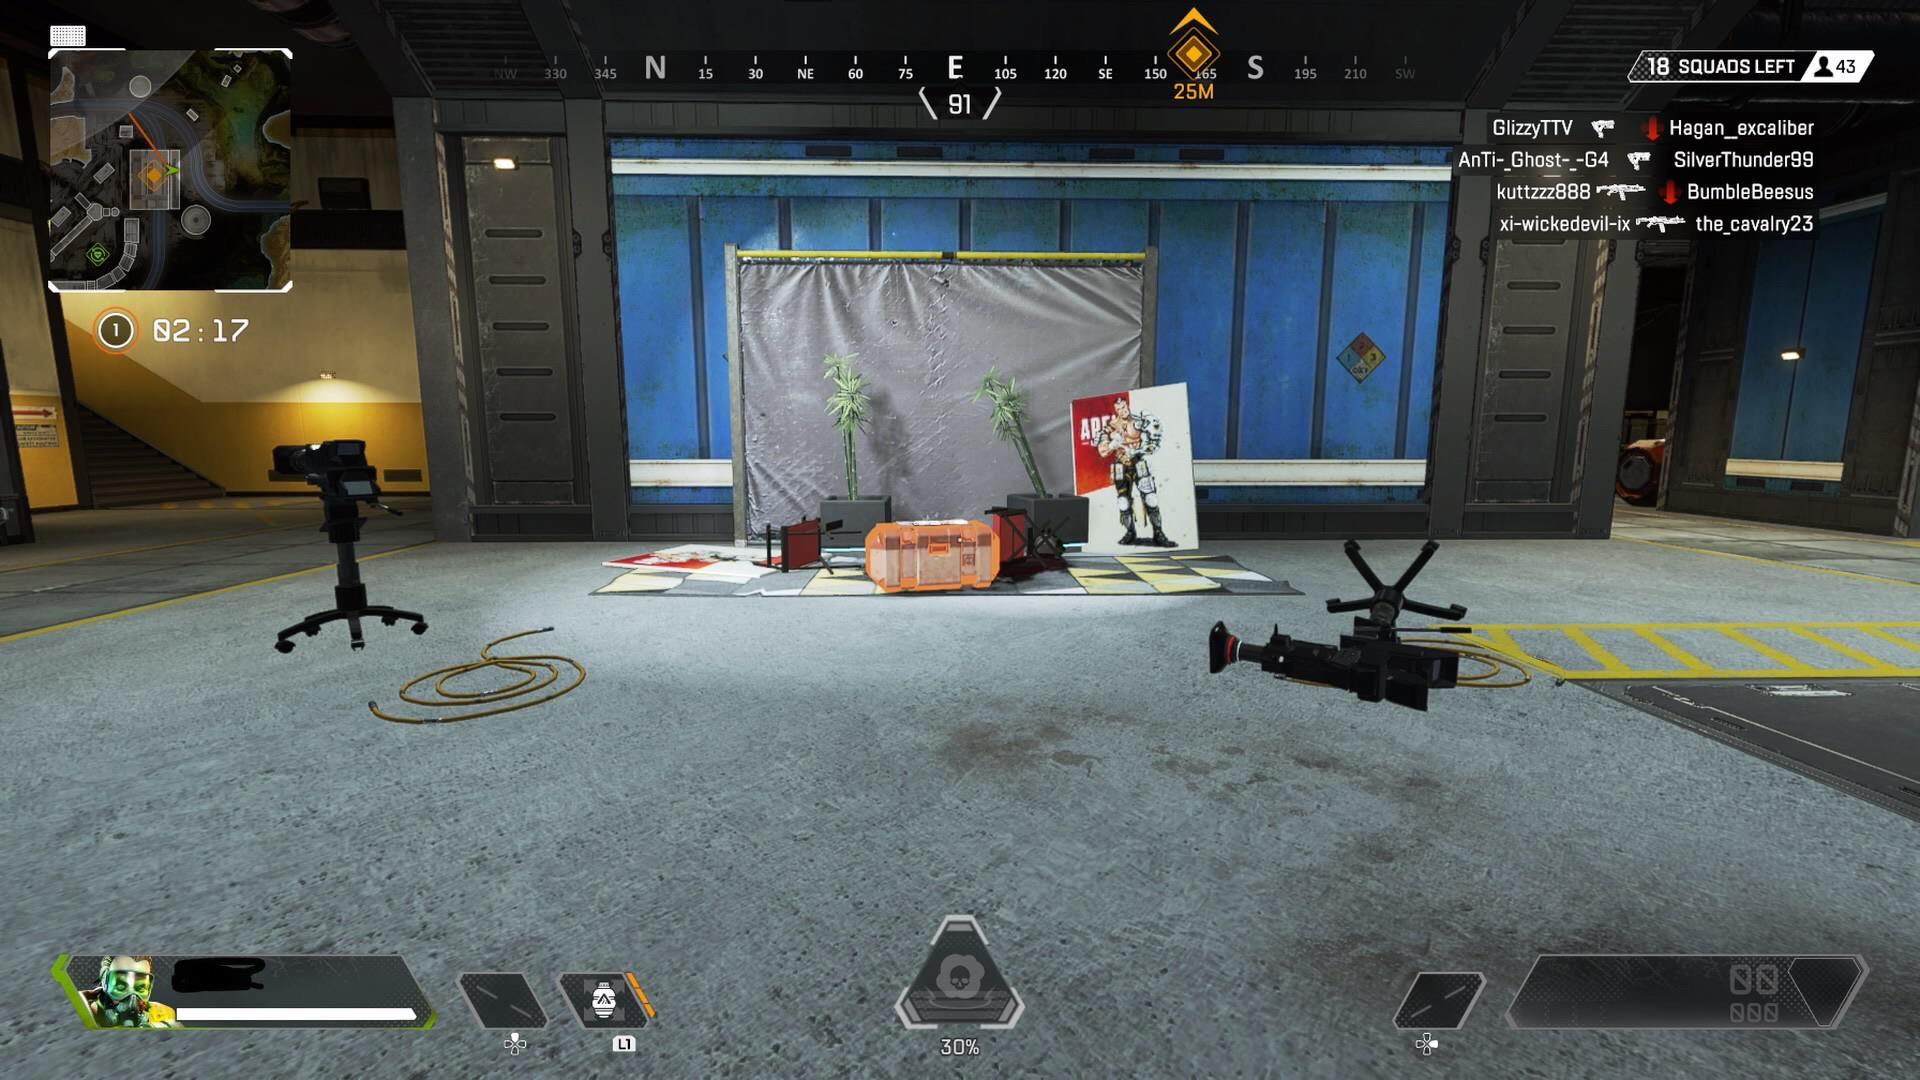 The set where Forge was attacked in Apex Legends.